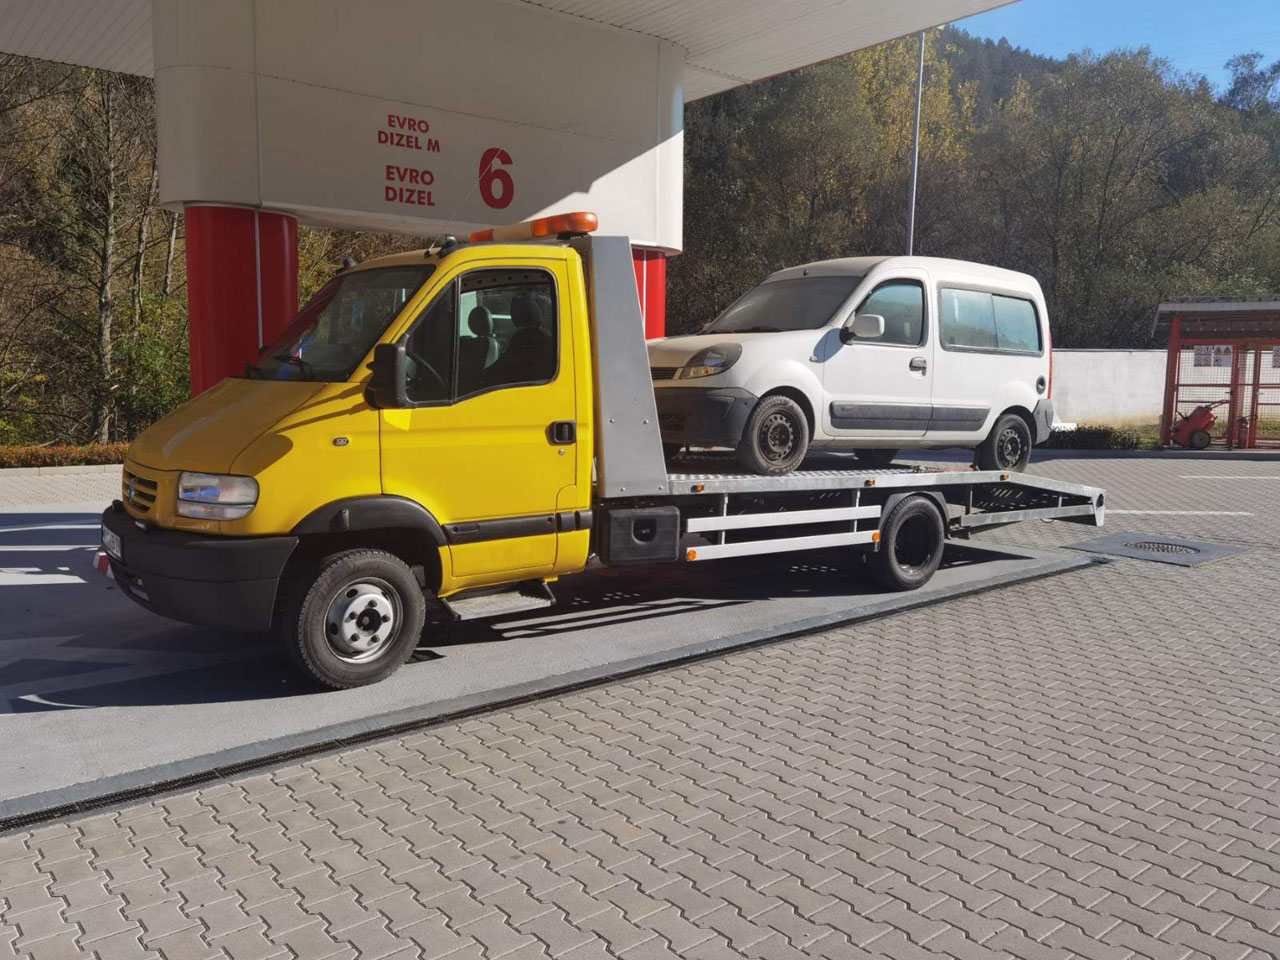 CAR AND TOWING SERVICE SEKULA 2006 Towing services Kraljevo - Photo 1